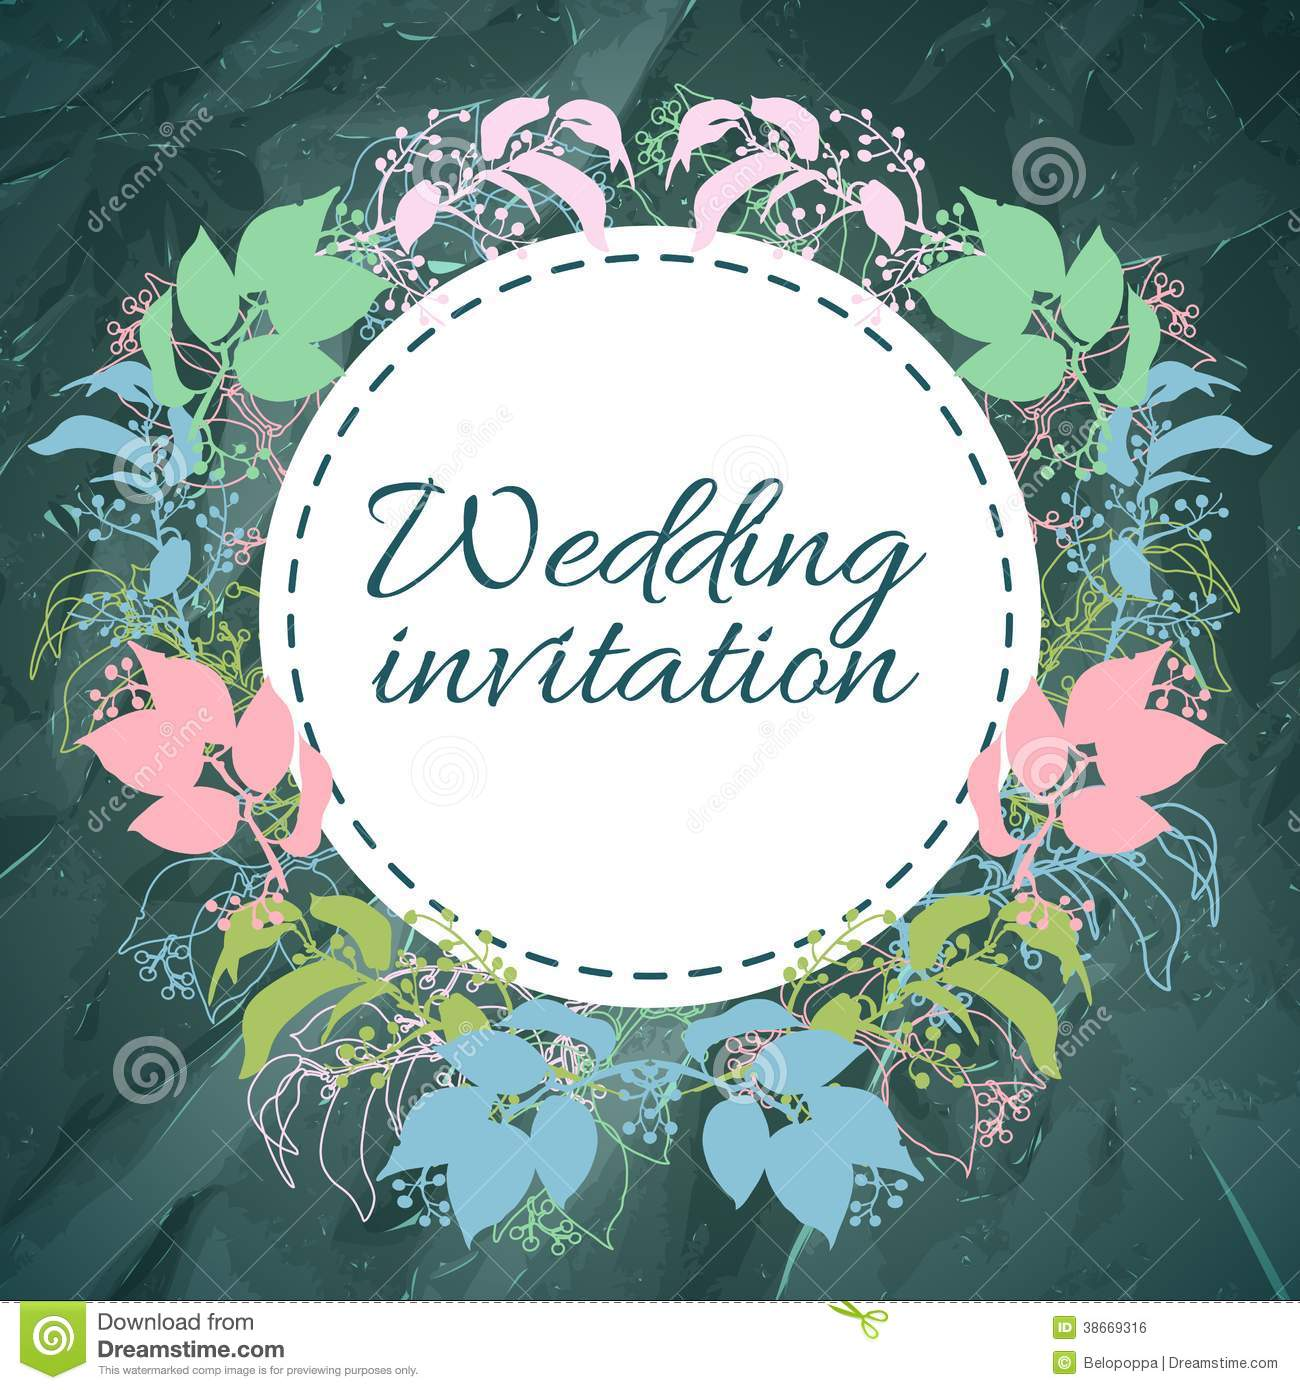 Save The Date Invitation Template Royalty Free Stock Image - Image ...